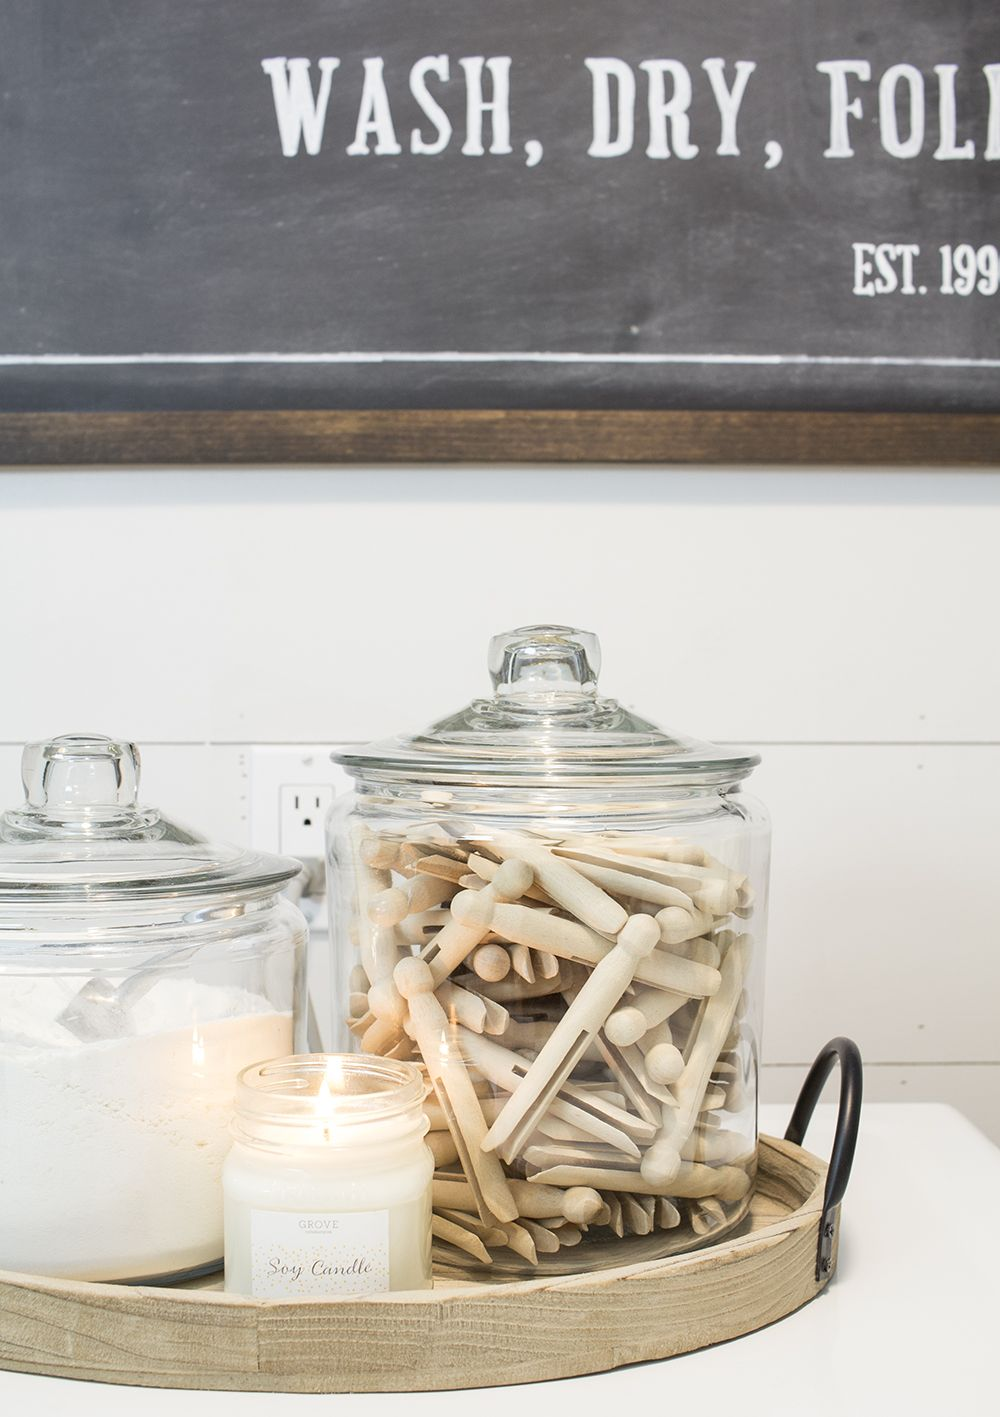 Design Your Own Laundry Room: Make Your Own Homemade Laundry Soap